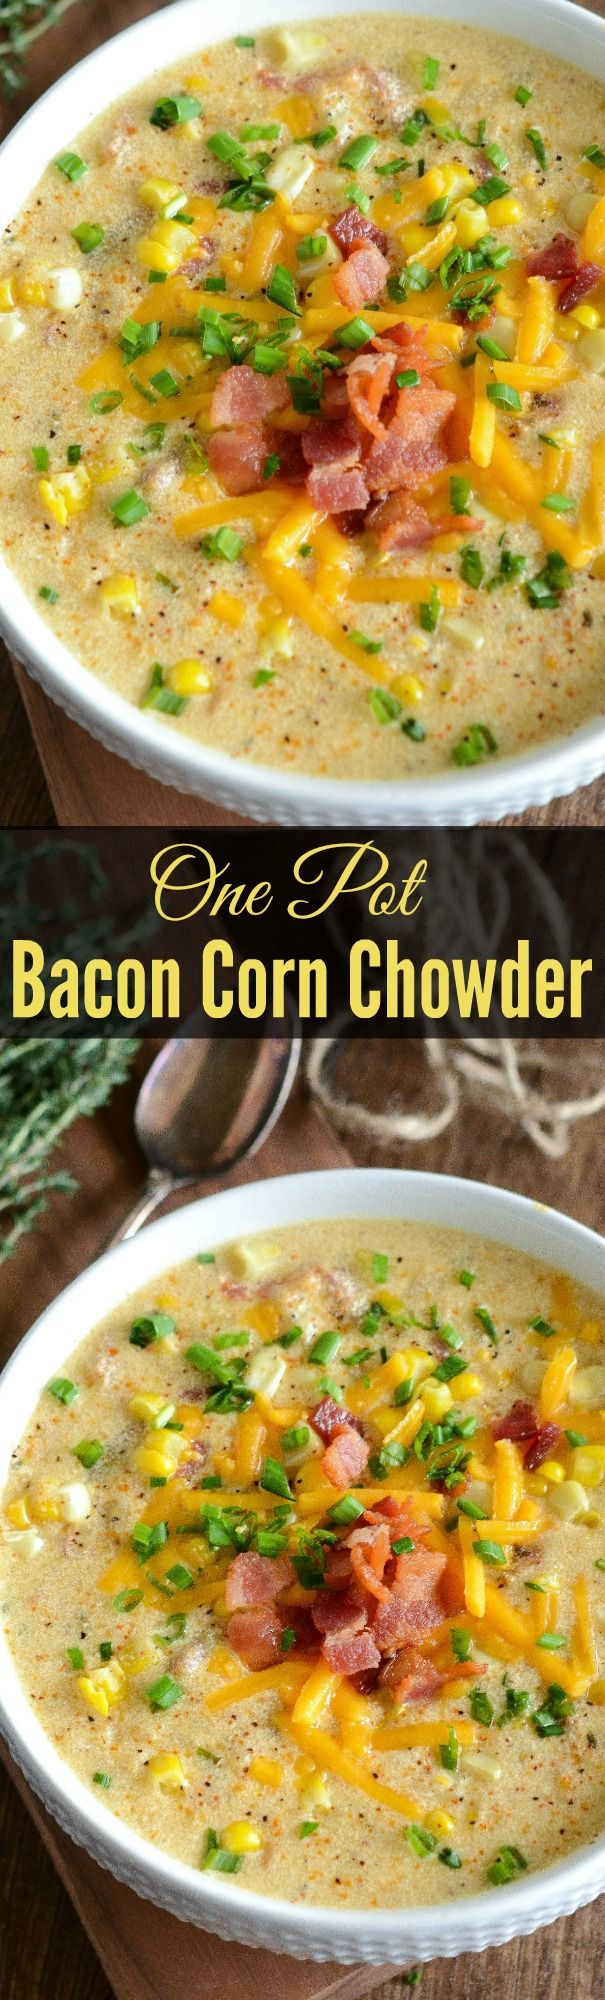 1000+ images about Food Ideas on Pinterest | Skillets, Cheddar and ...